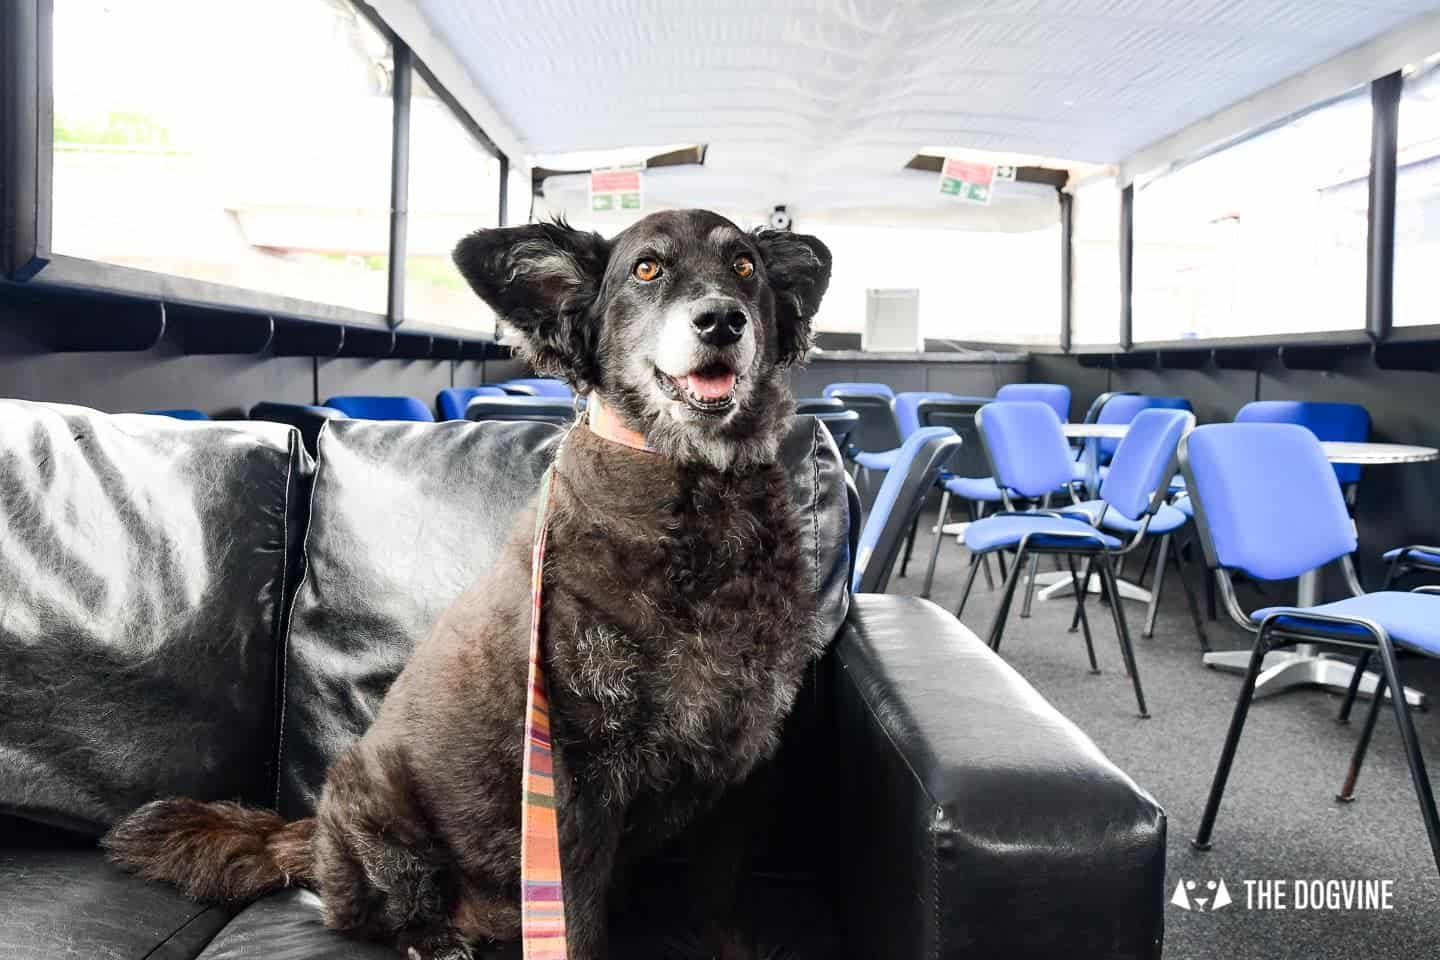 Queen Elizabeth Olympic Park Dog-friendly Boat Tours London - Lee and Stort 17